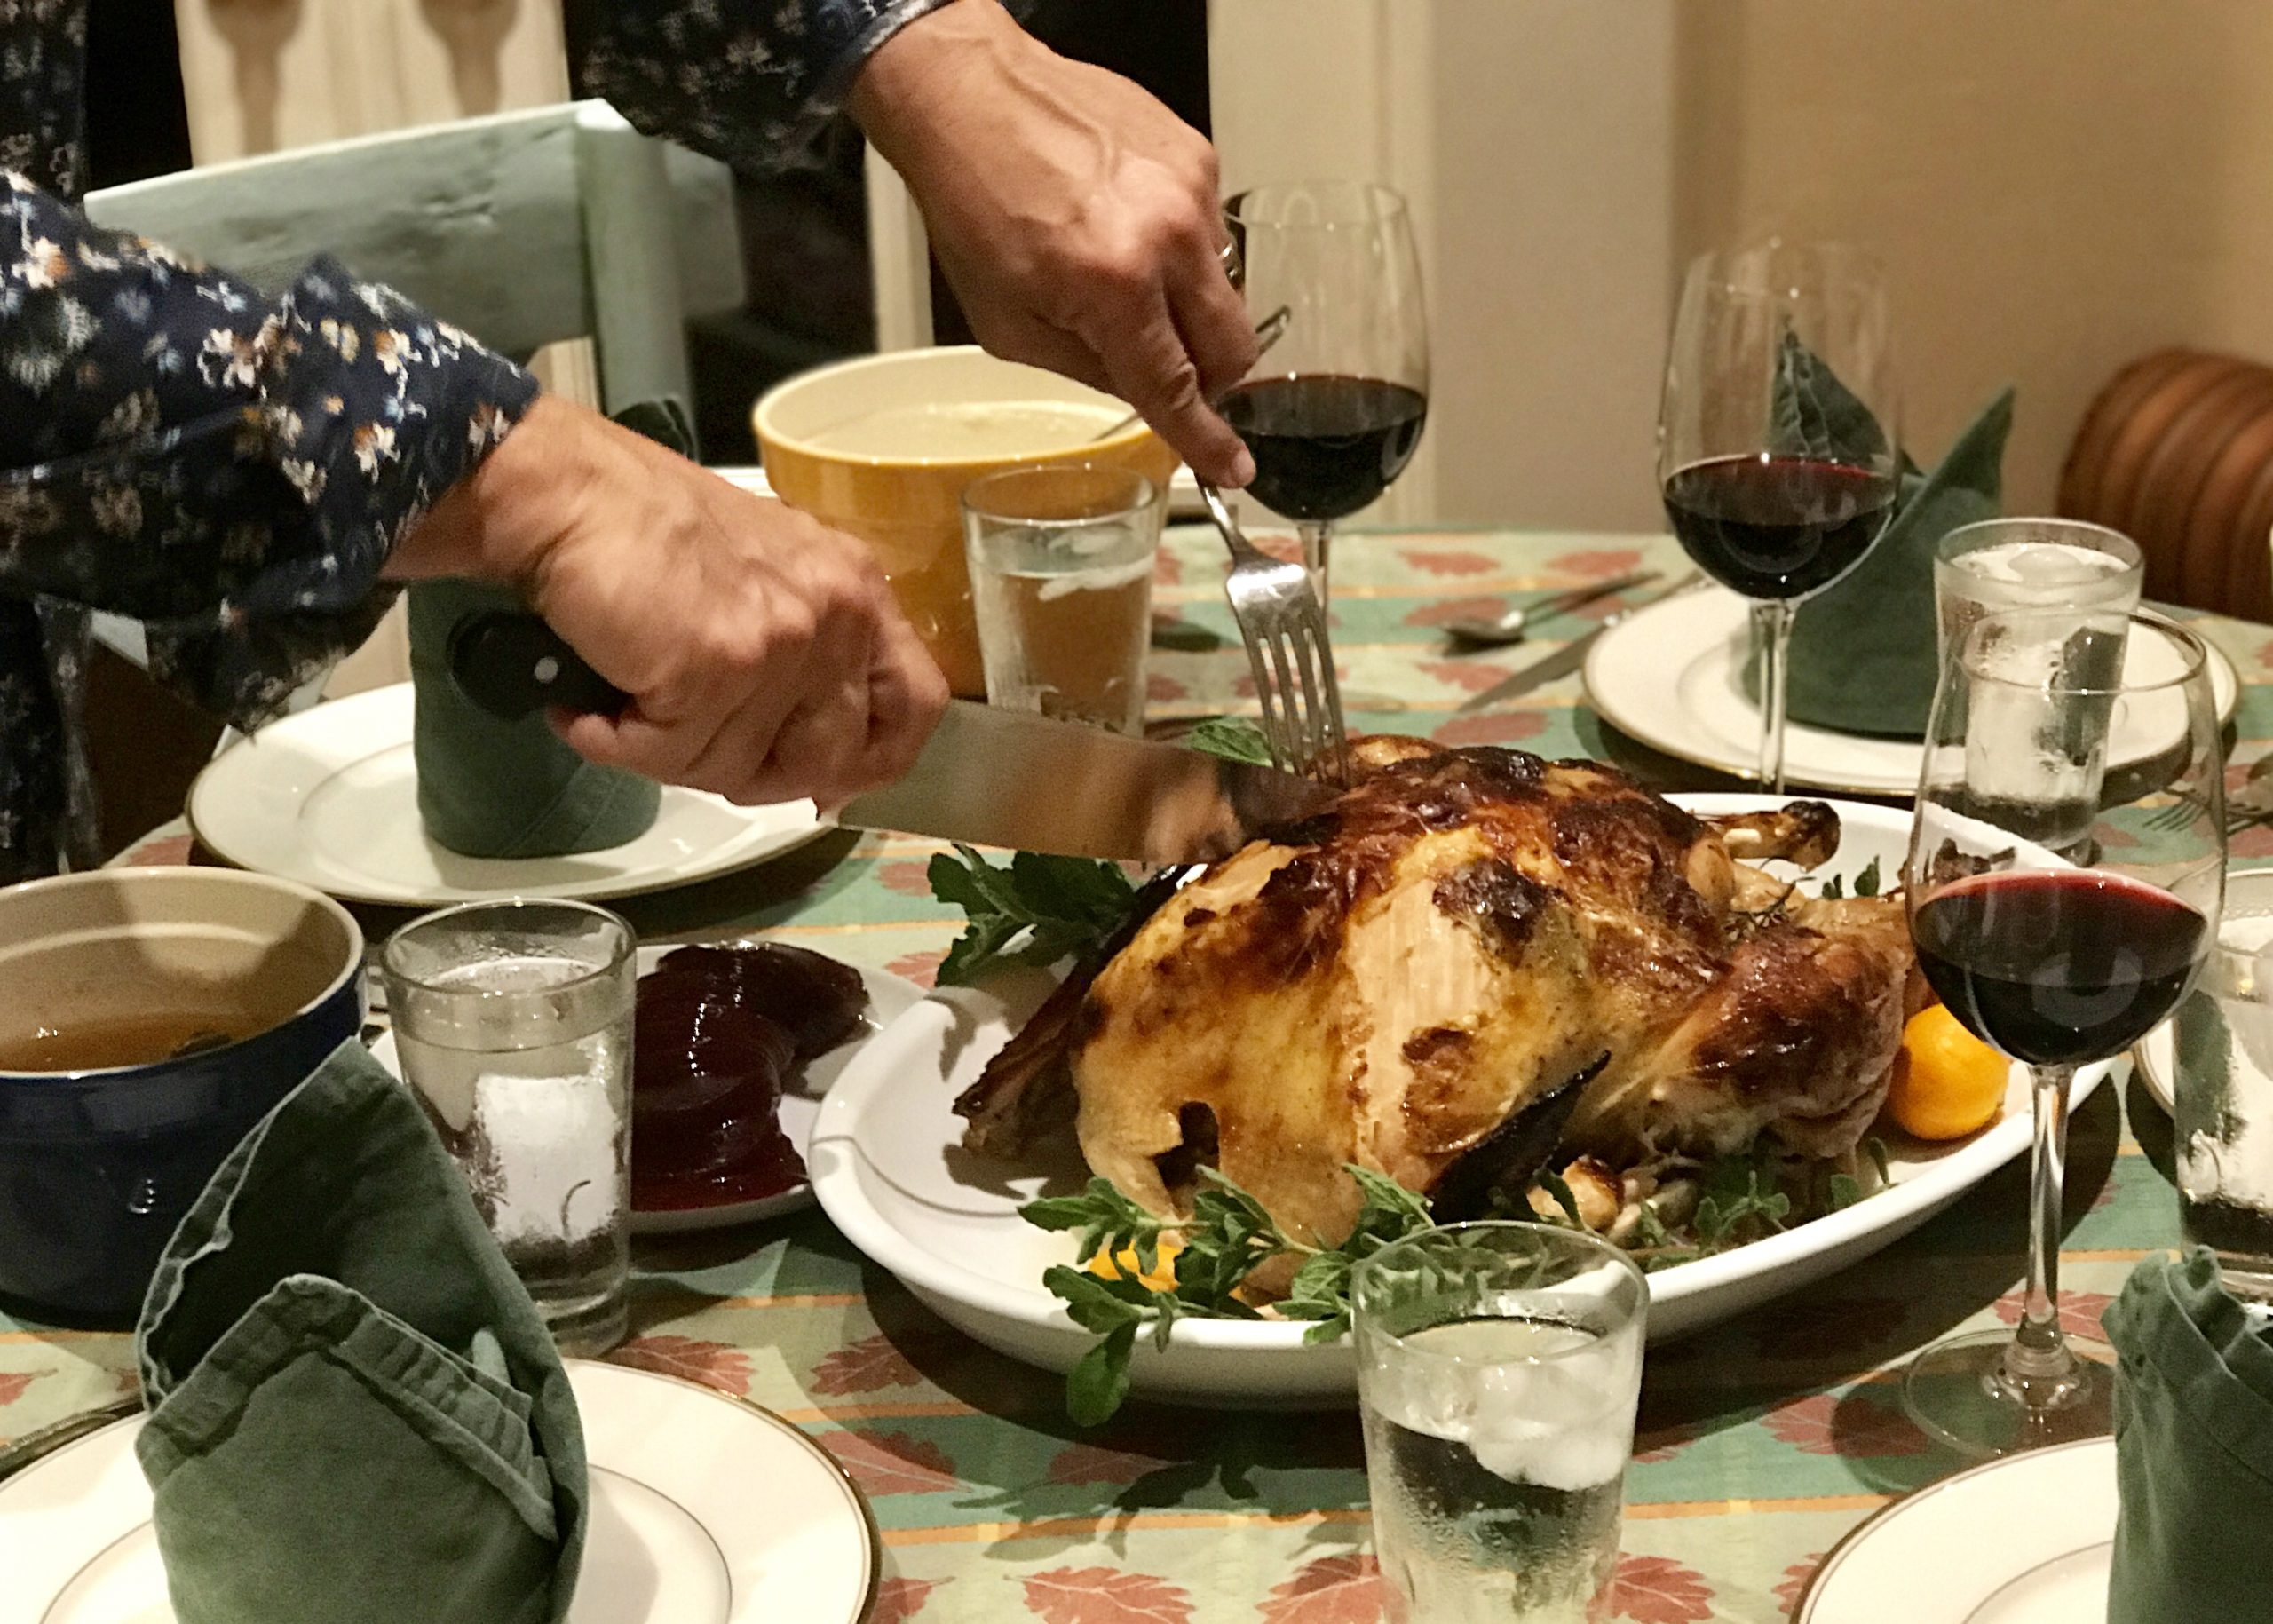 Man carves turkey at Thanksgiving dinner table